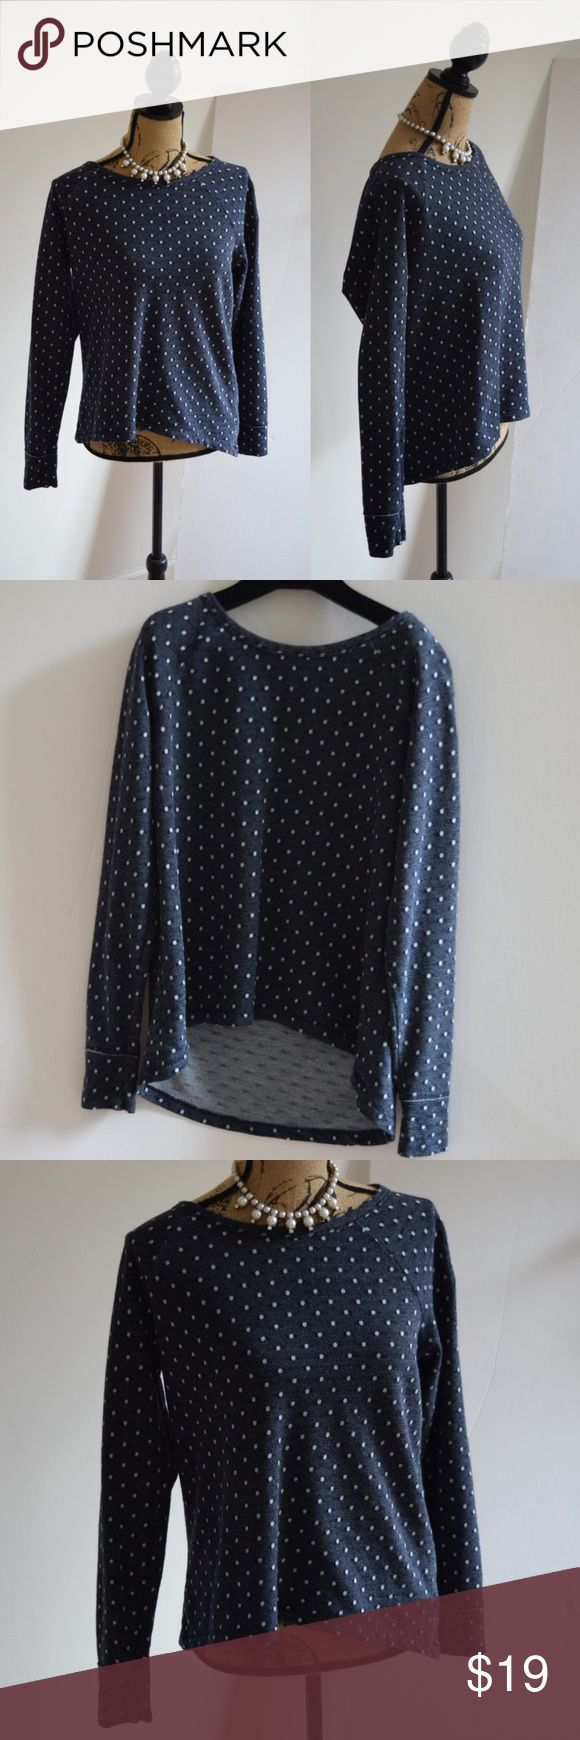 Gap Polka Dot Sweatershirt Beautiful navy blue and white polka dot pullover by Gap. Excellent condition. Size Medium. 50% cotton, 50% polyester. GAP Tops Sweatshirts & Hoodies